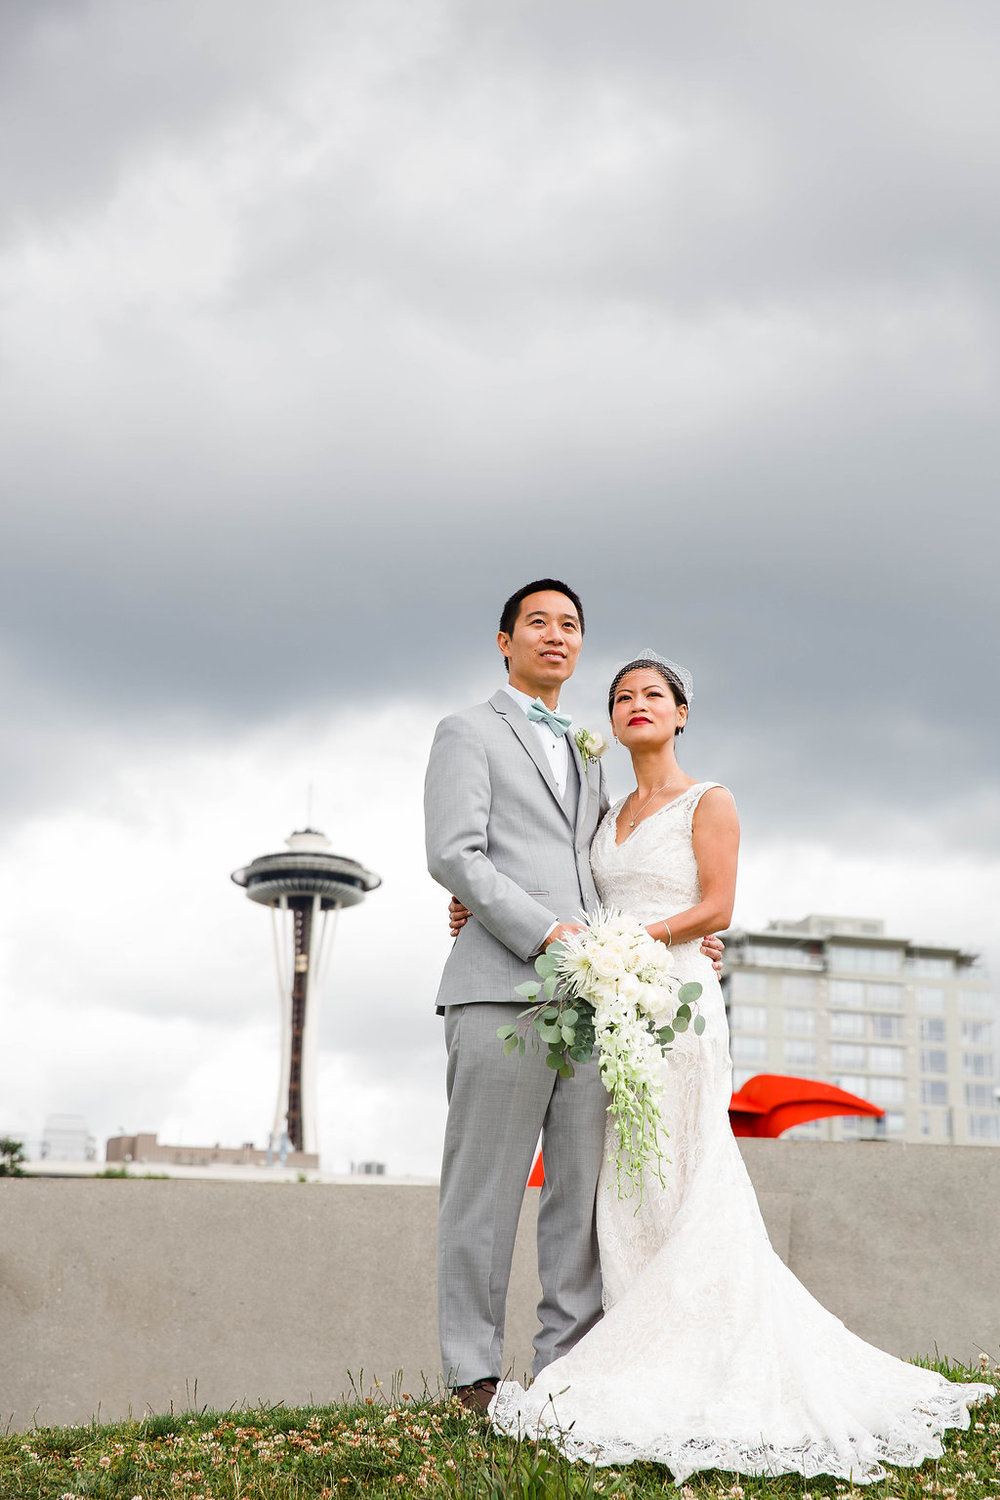 Bao_Uyen+Chris_Wedding_Seattle_Bell_Harbor_6182016_191.jpg